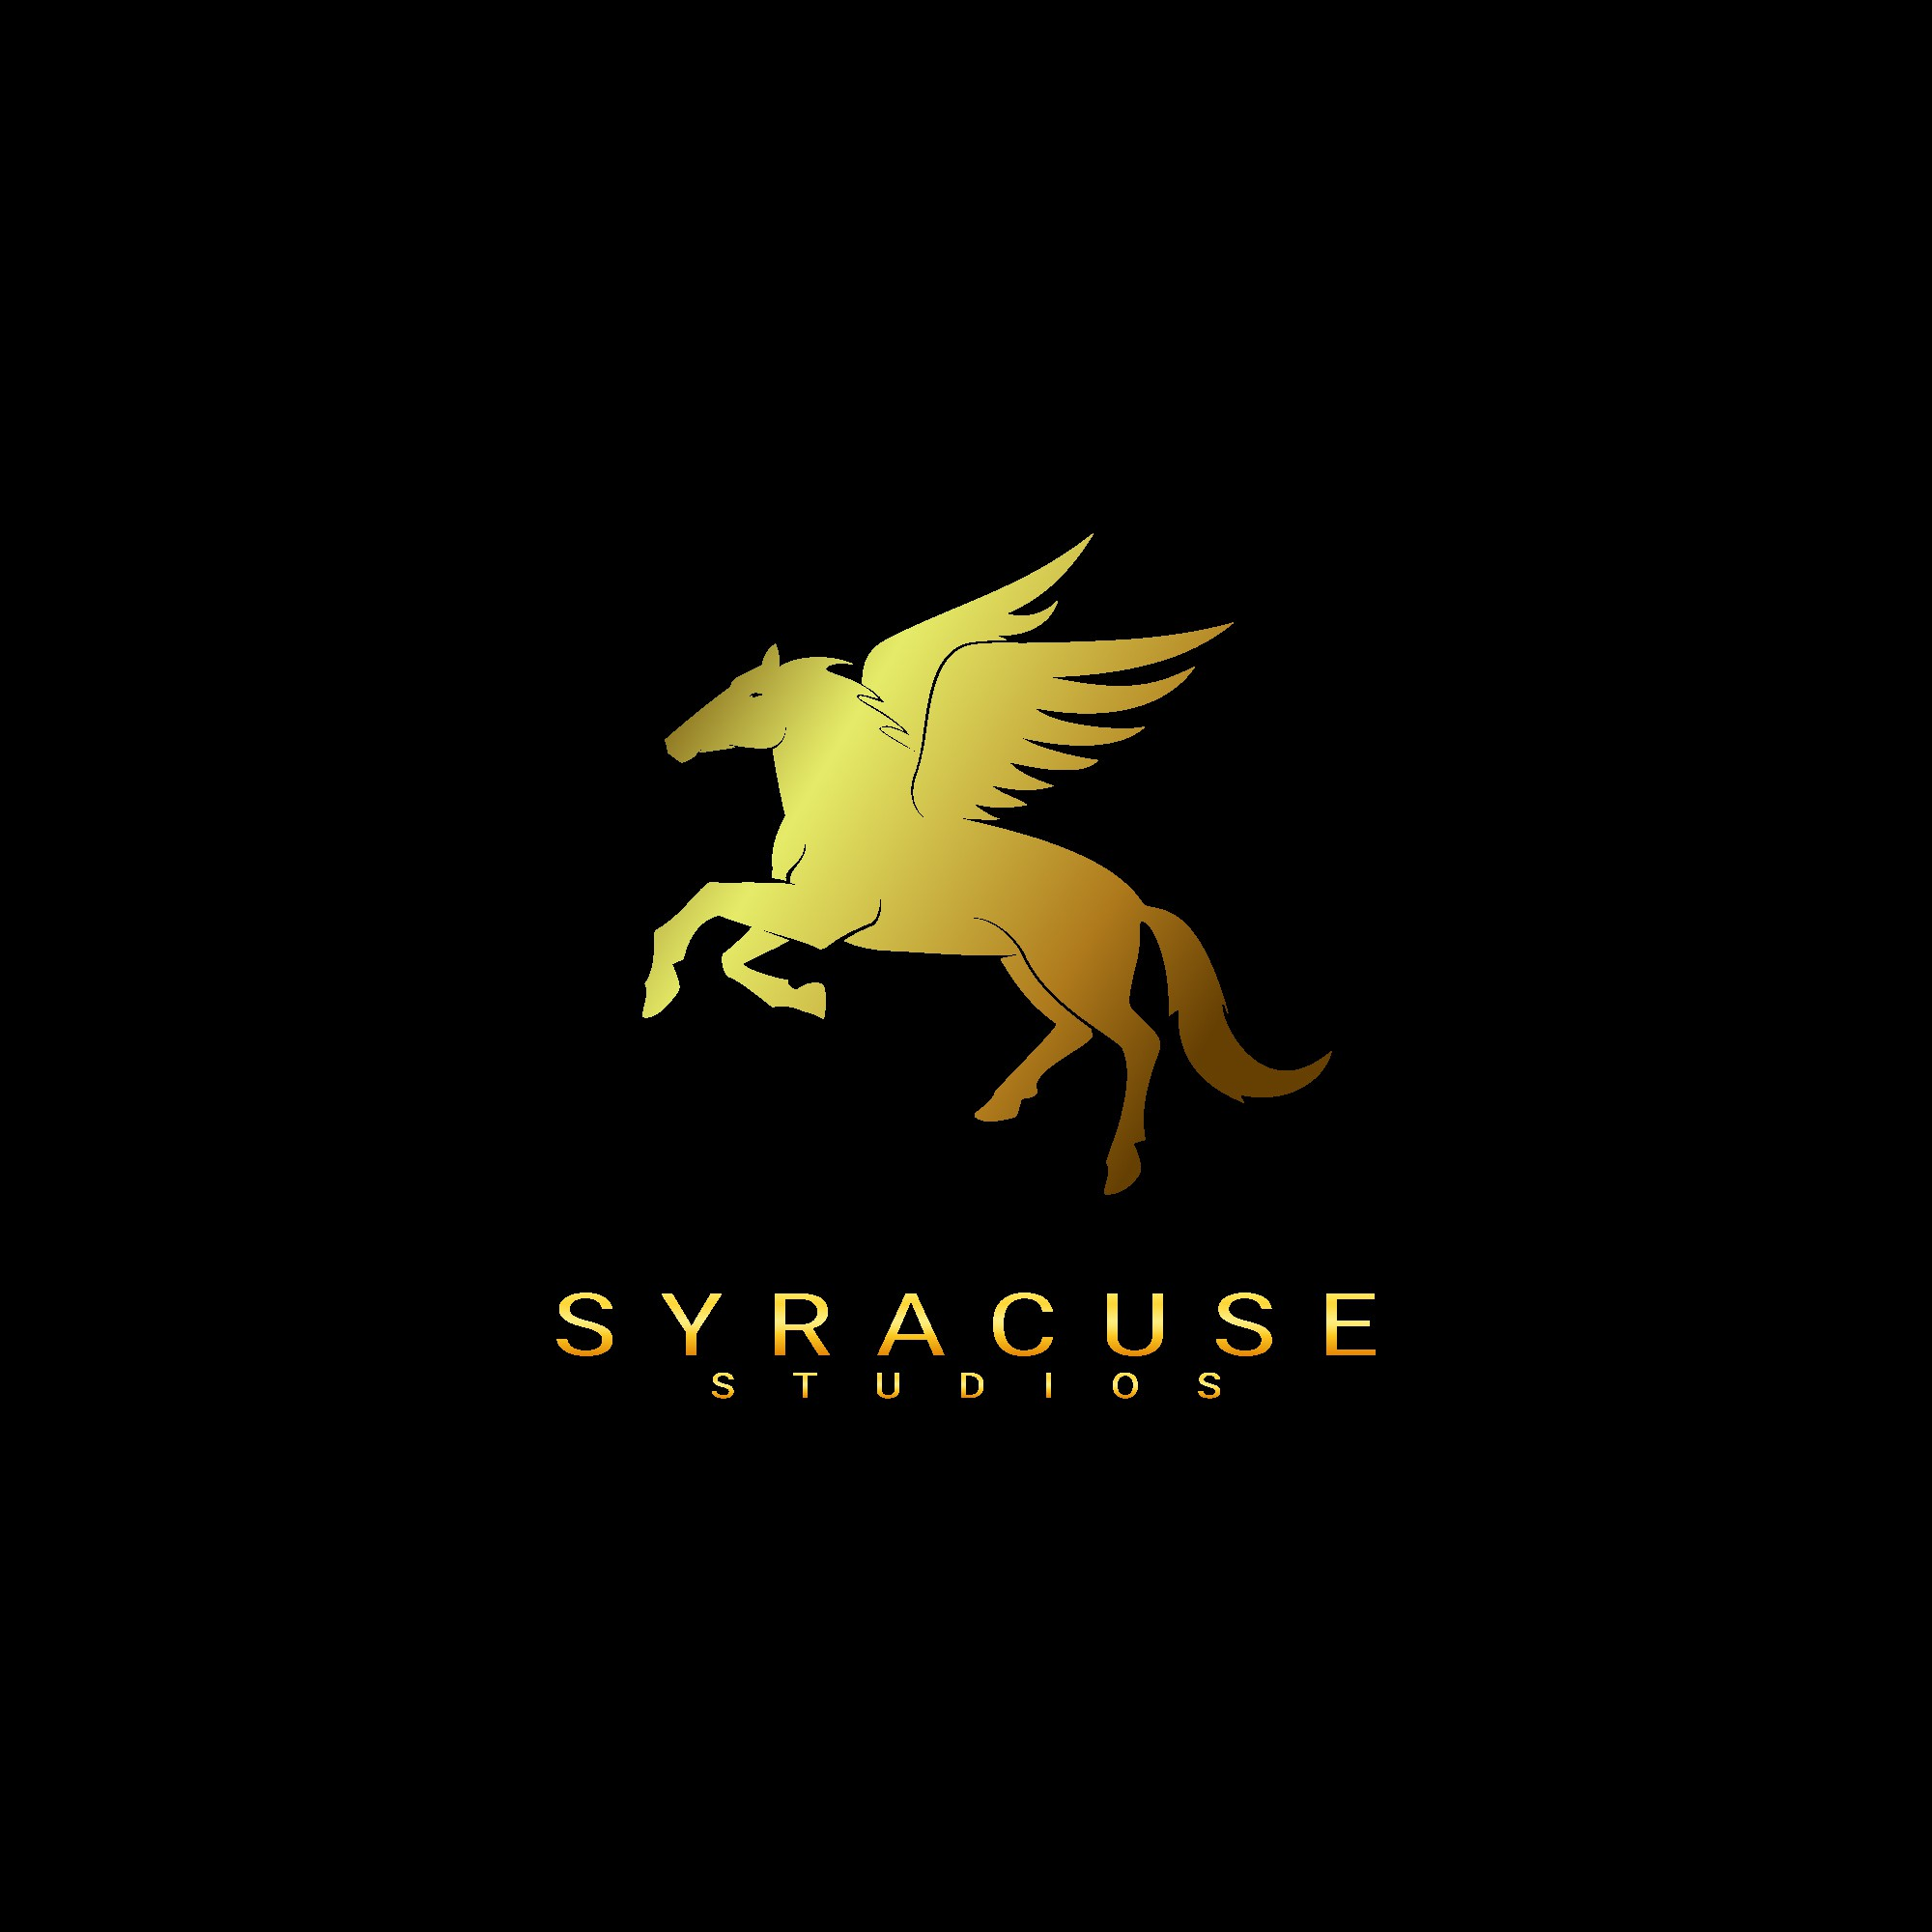 Syracuse Studios Needs A Memorable And Exciting New Logo